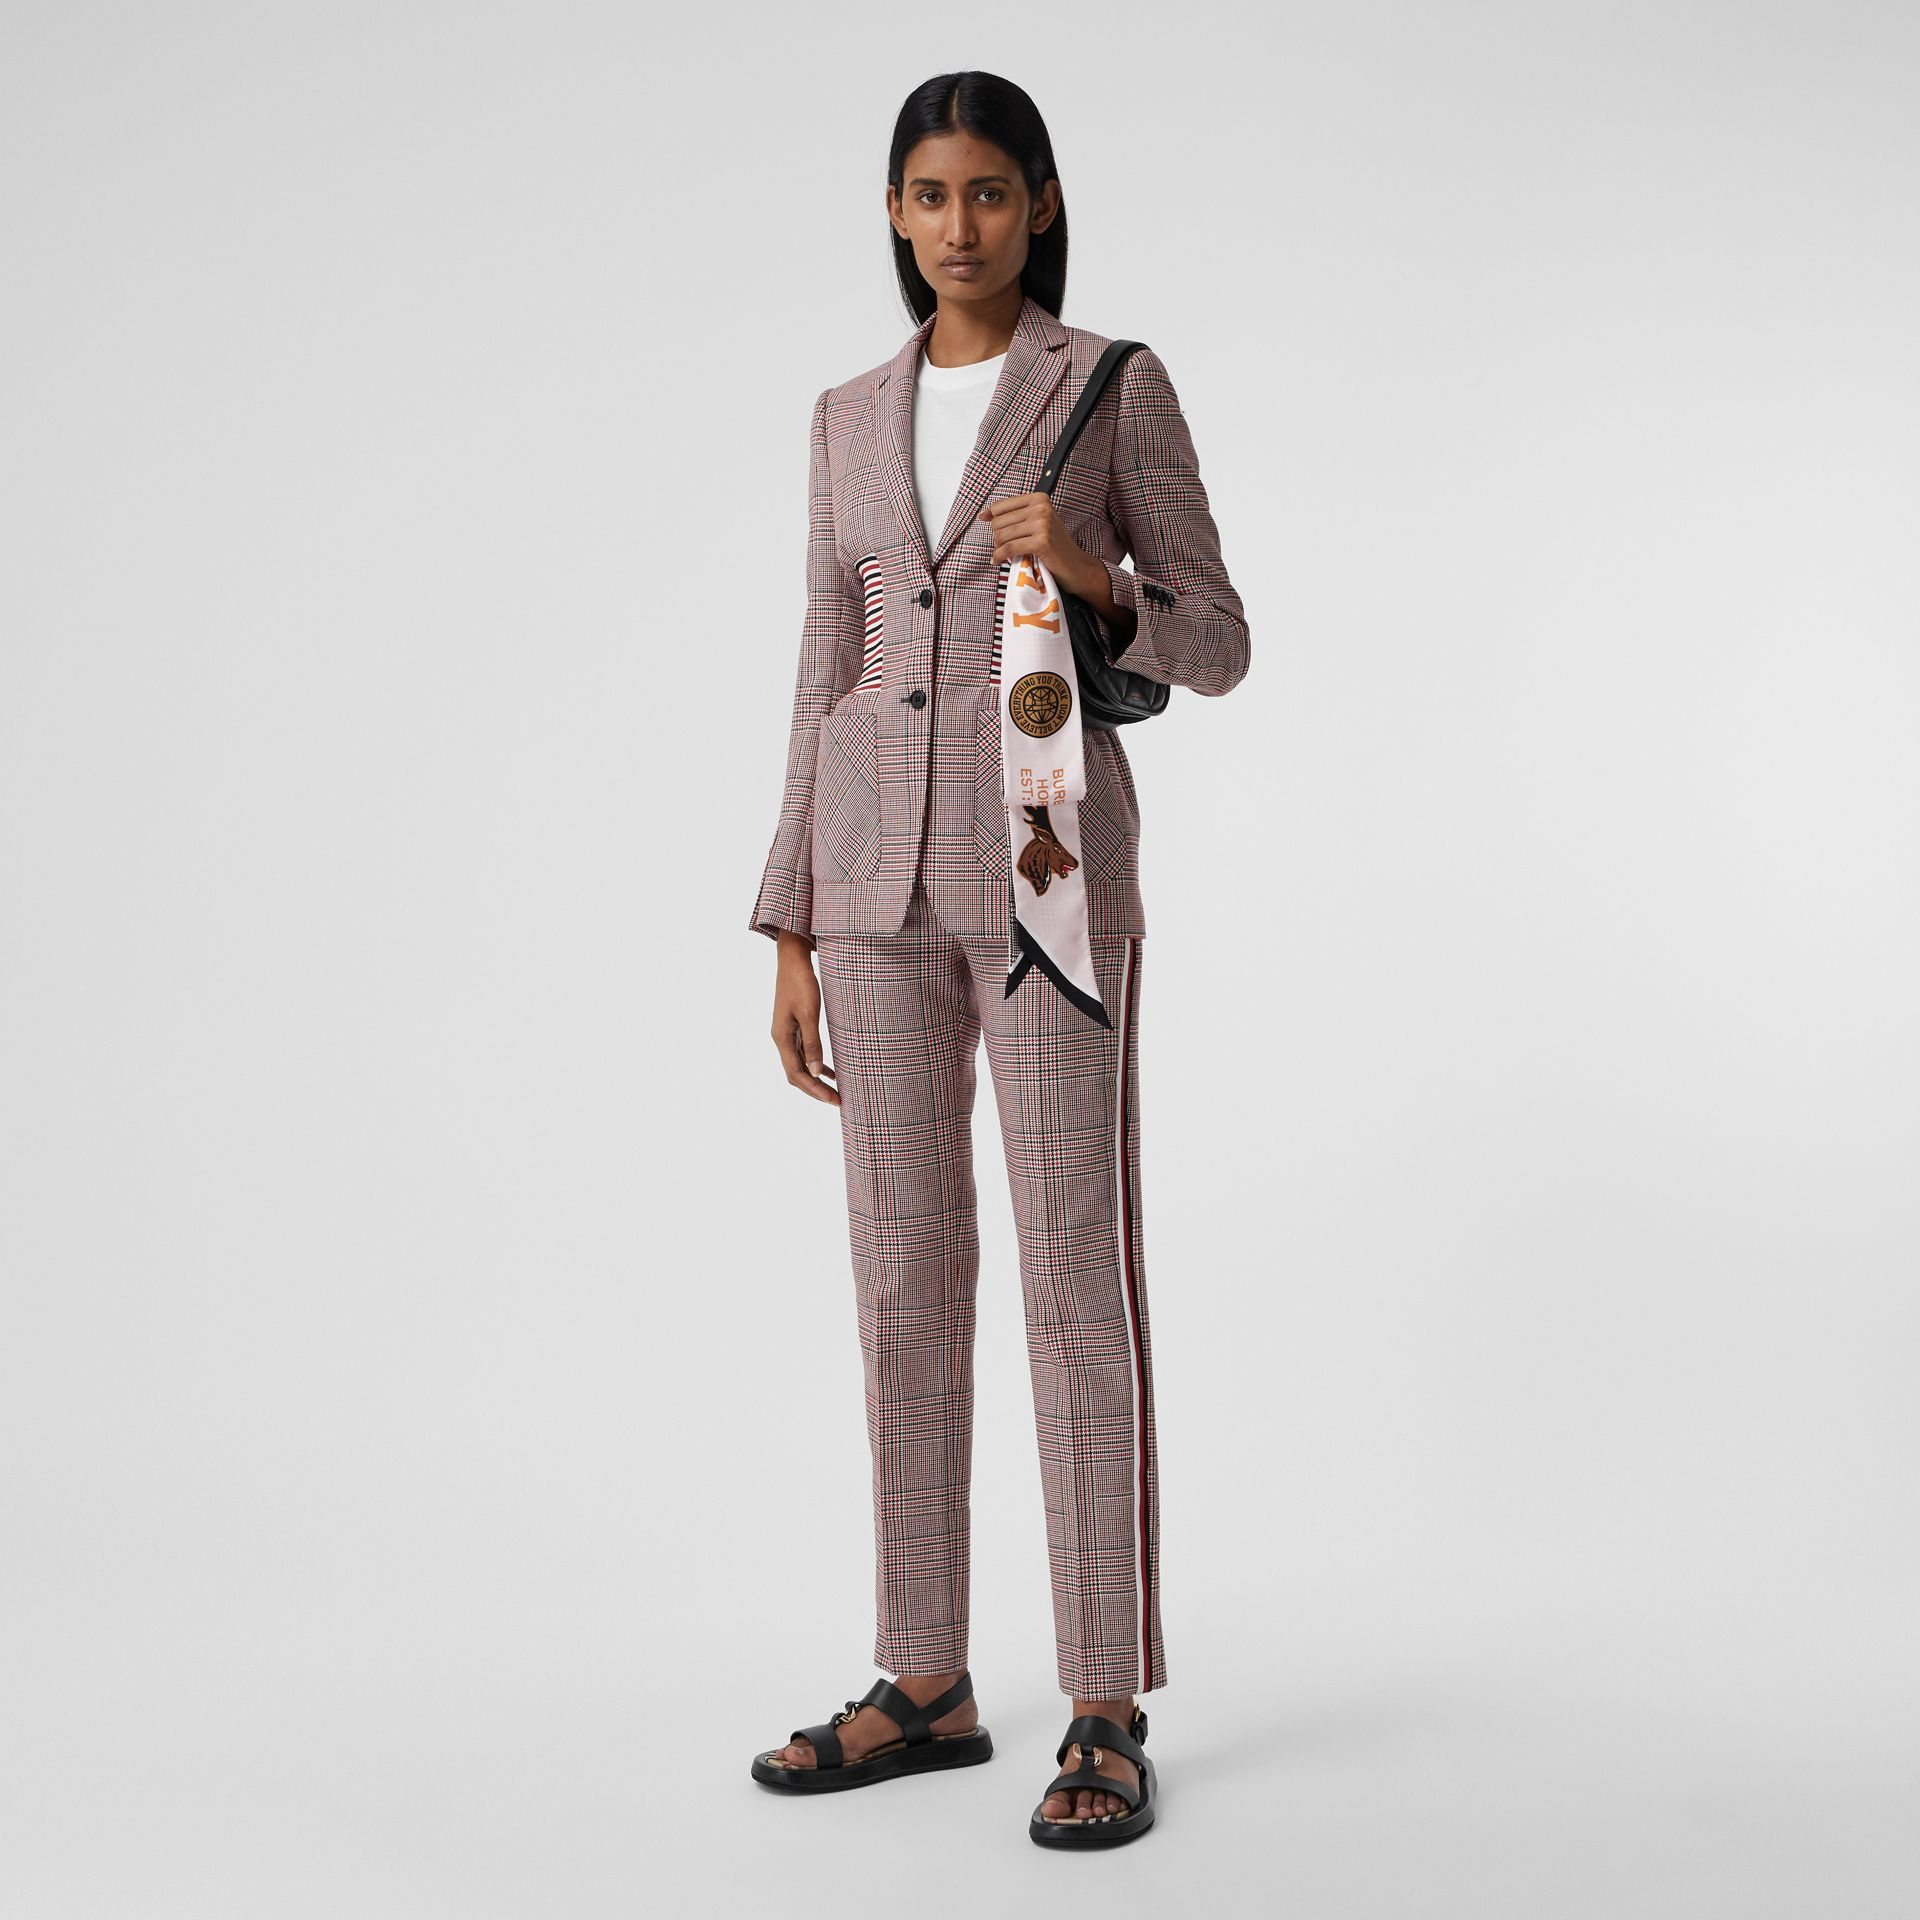 Varsity Graphic and Houndstooth Check Silk Skinny Scarf in Pink | Burberry - gallery image 5